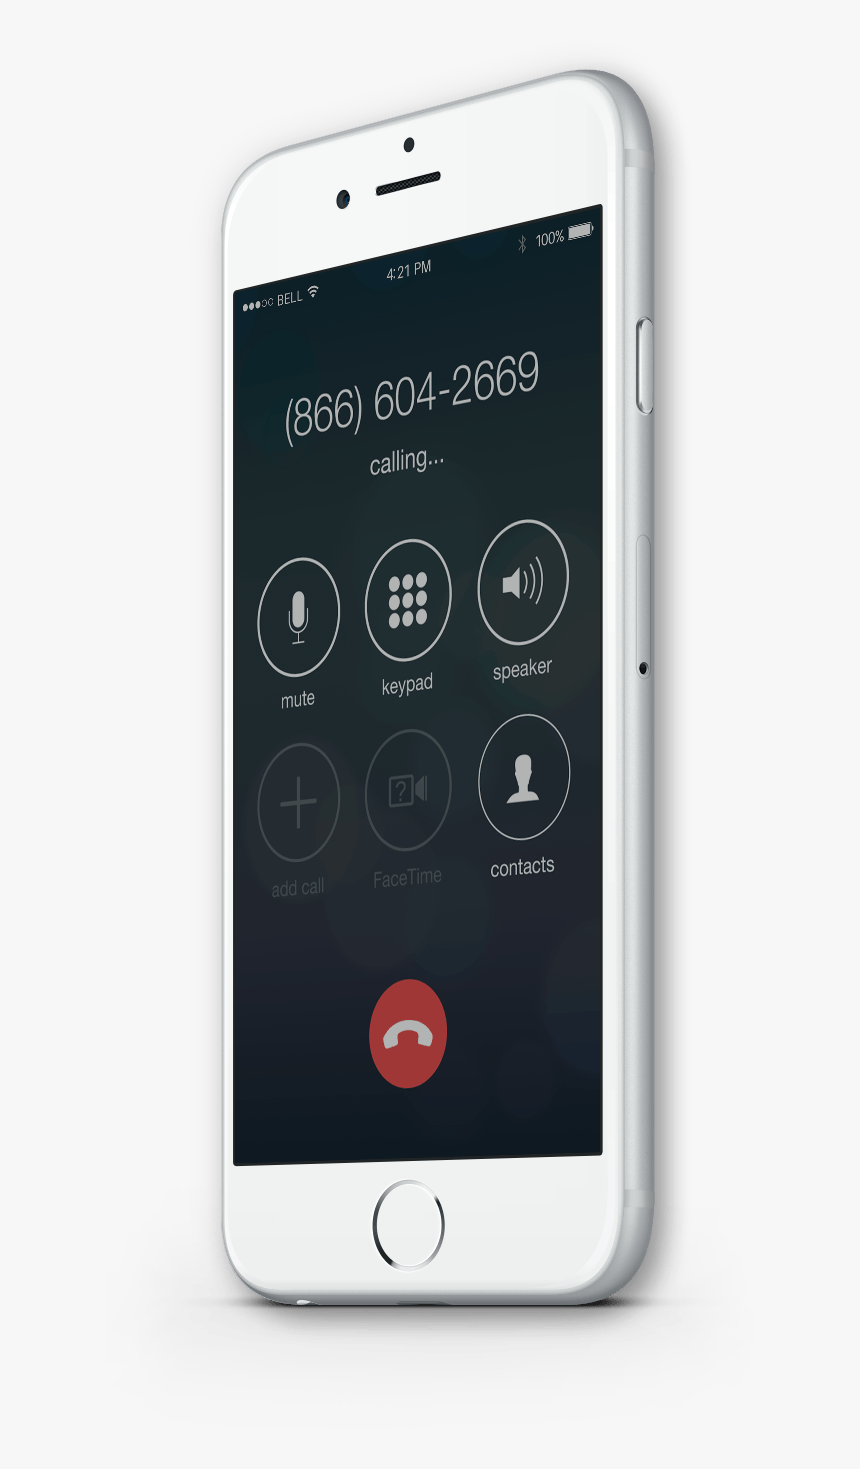 Iphone Call Png Iphone Call Screen Png Transparent Png Transparent Png Image Pngitem